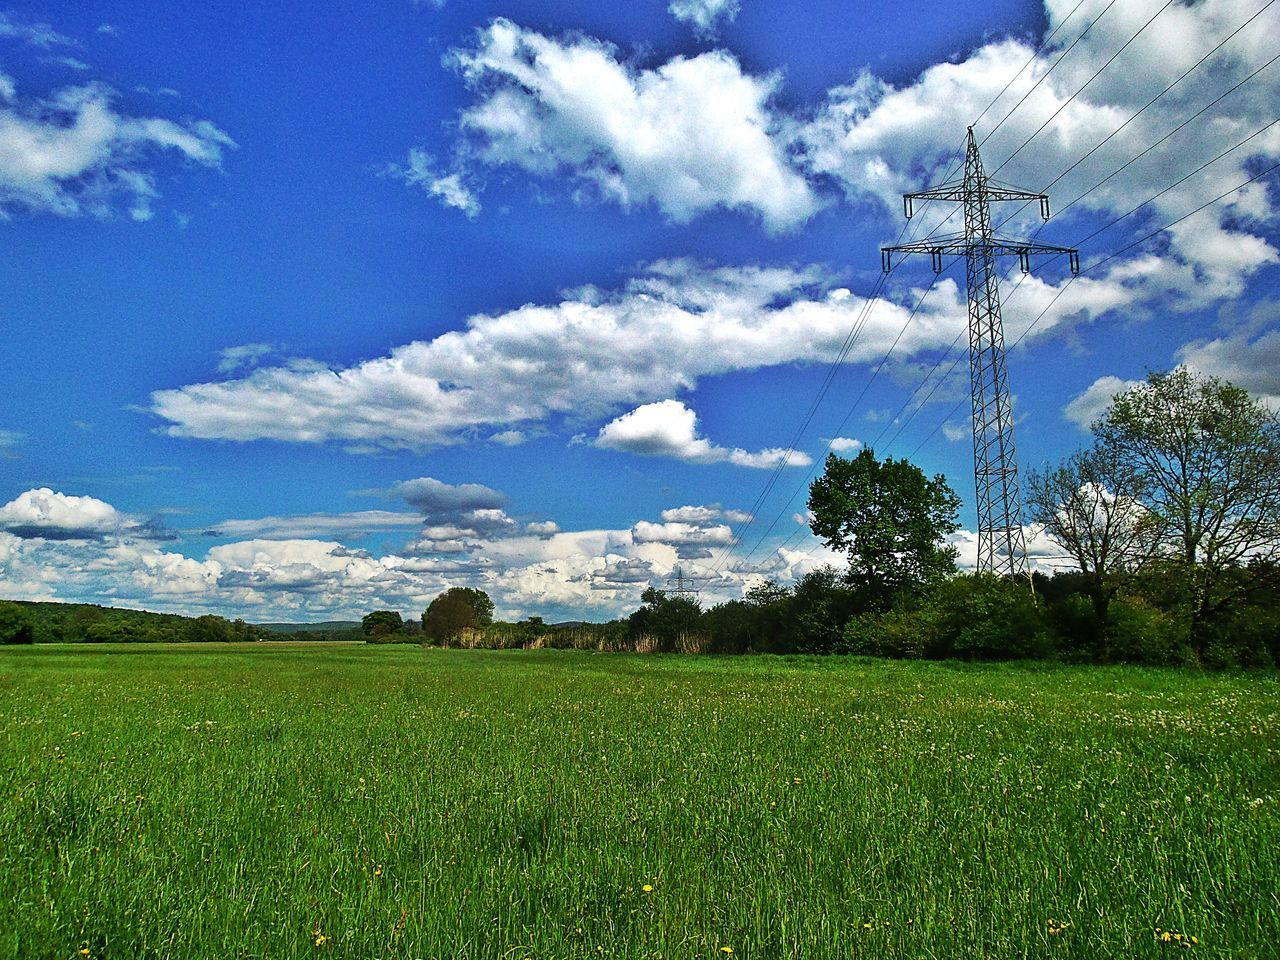 Rural Landscape Spring Impressions Cloud - Sky Blue Sky White Clouds Sunny Day Meadowlands Green Grass Rural Scene Trees Growth Field Tranquility Tranquil Scene Agriculture Scenics Nature Powerlines Landscape Beliebte Fotos Day No People Kinzig Auen Langenselbold Germany🇩🇪